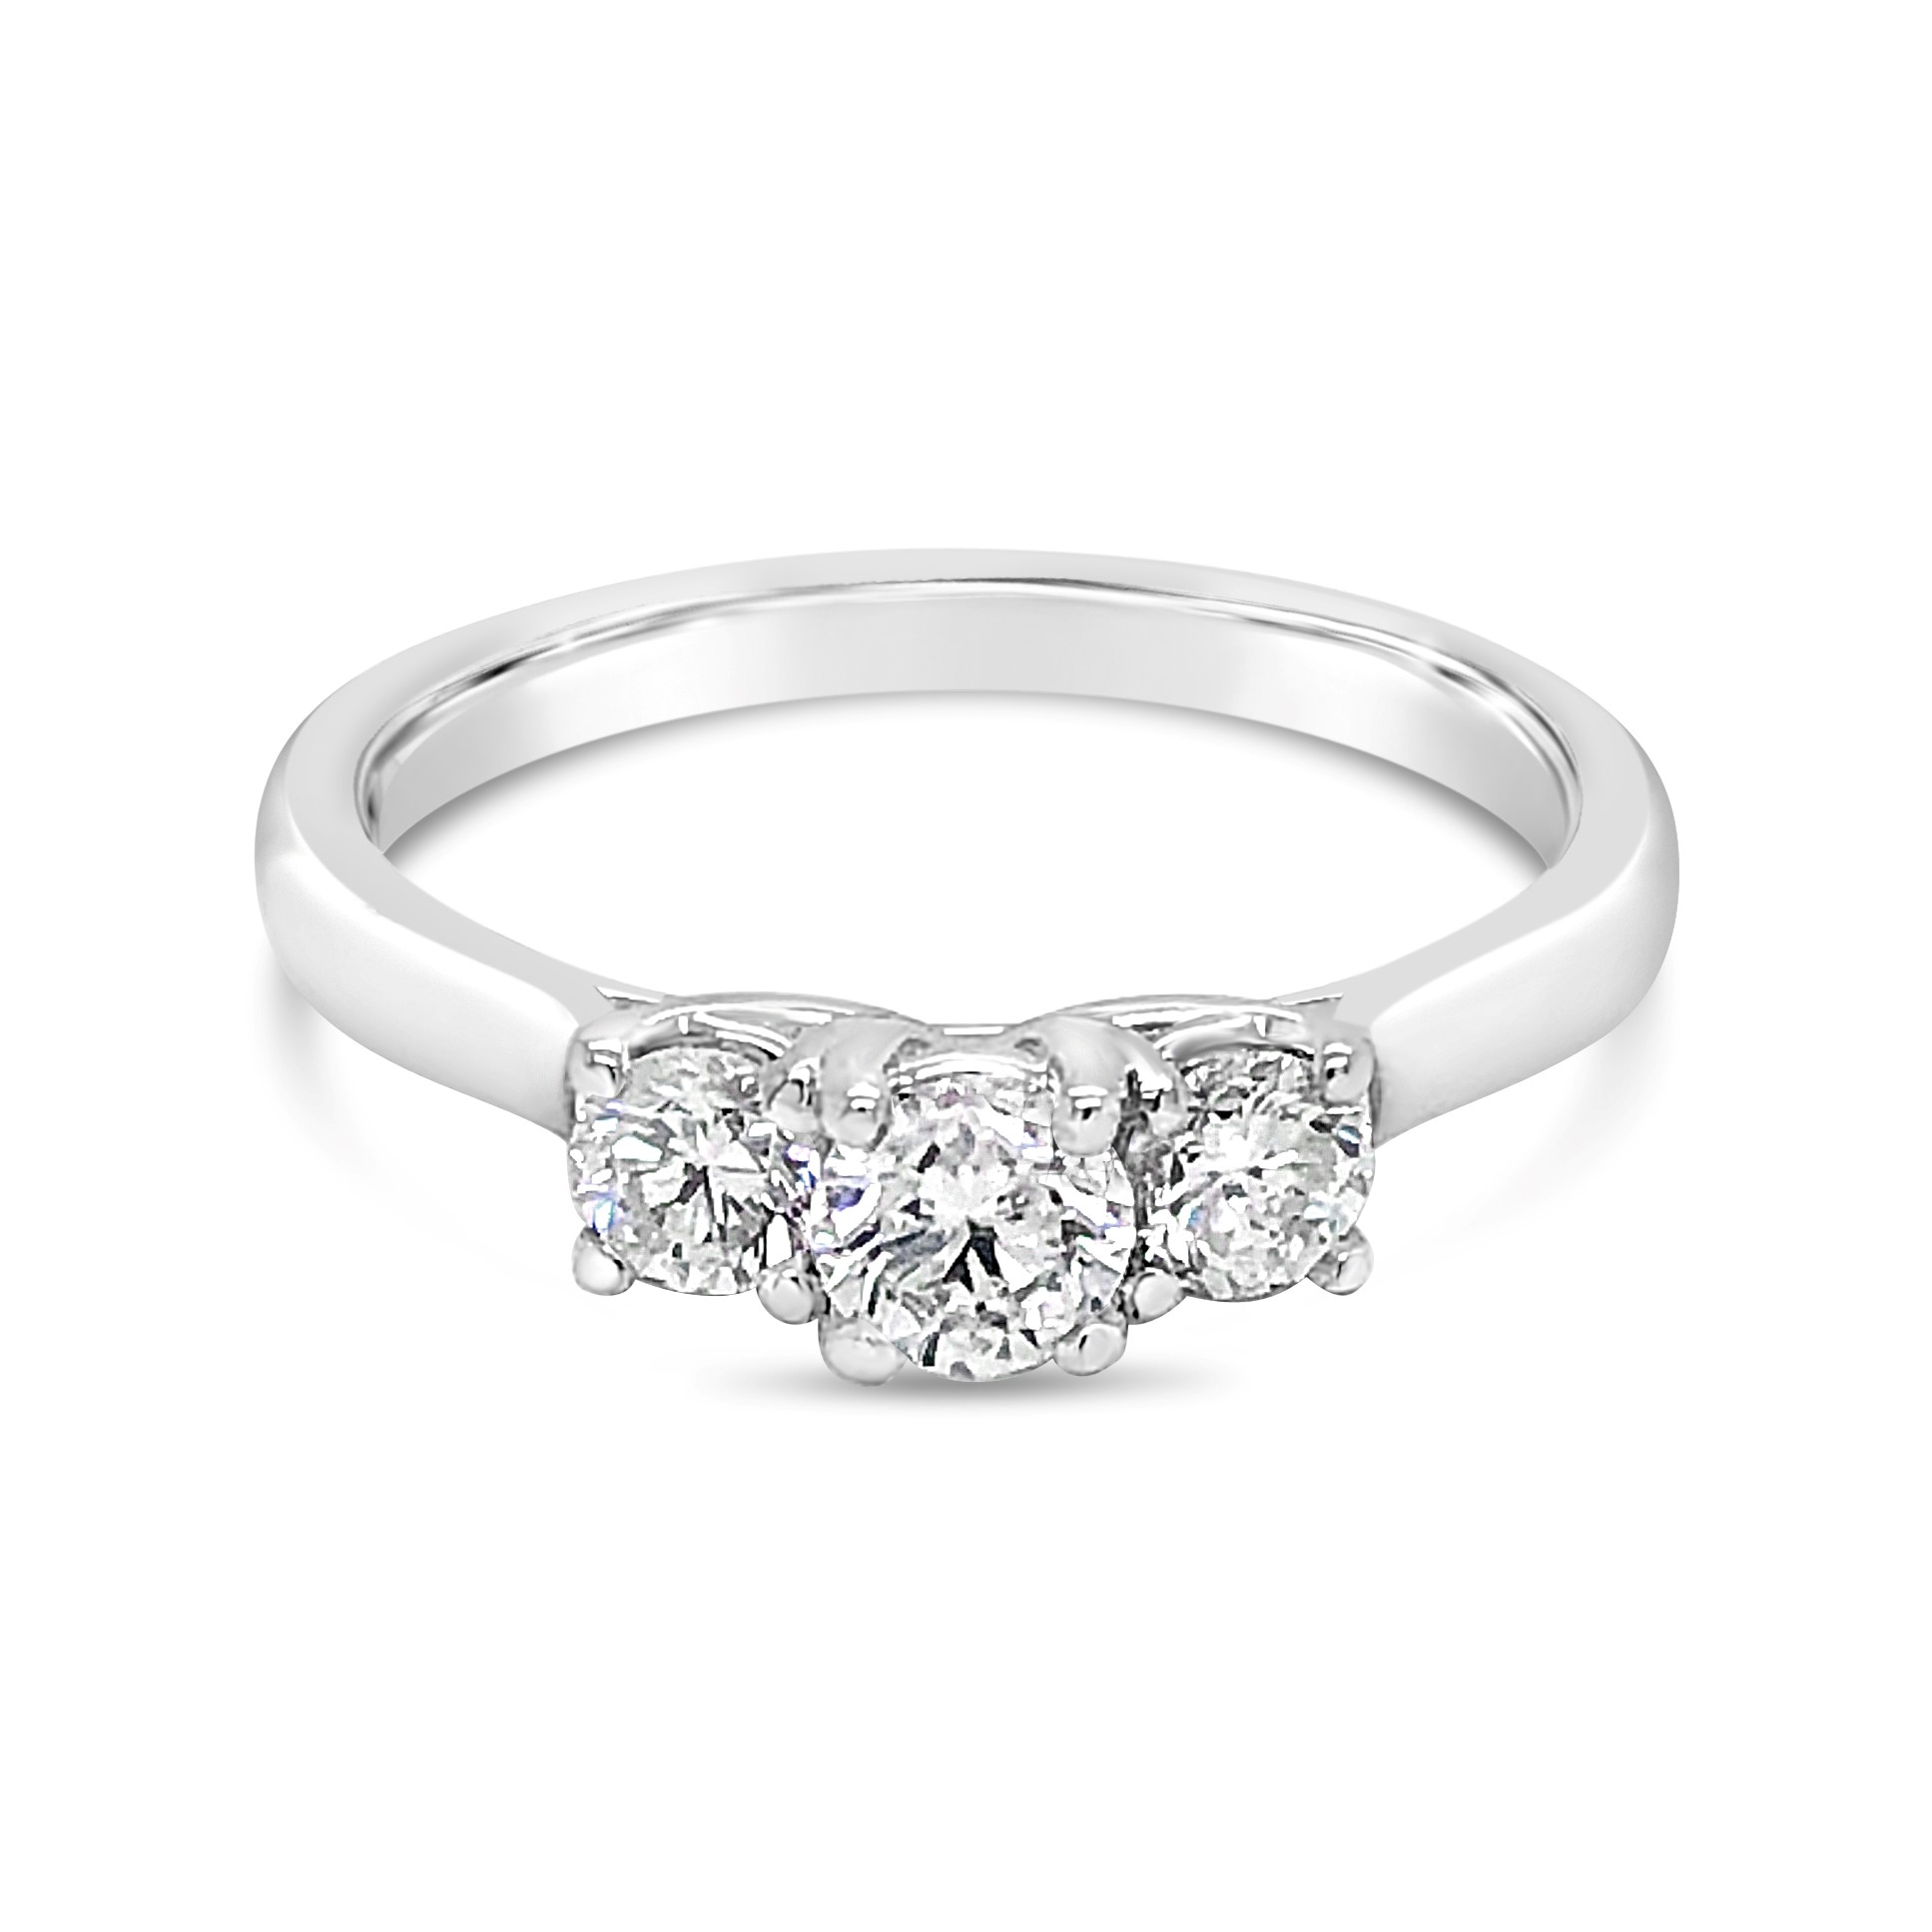 14k White Gold 3 Stone Solitaire Diamond Engagement Ring Texas Gold Connection Greenville Tx